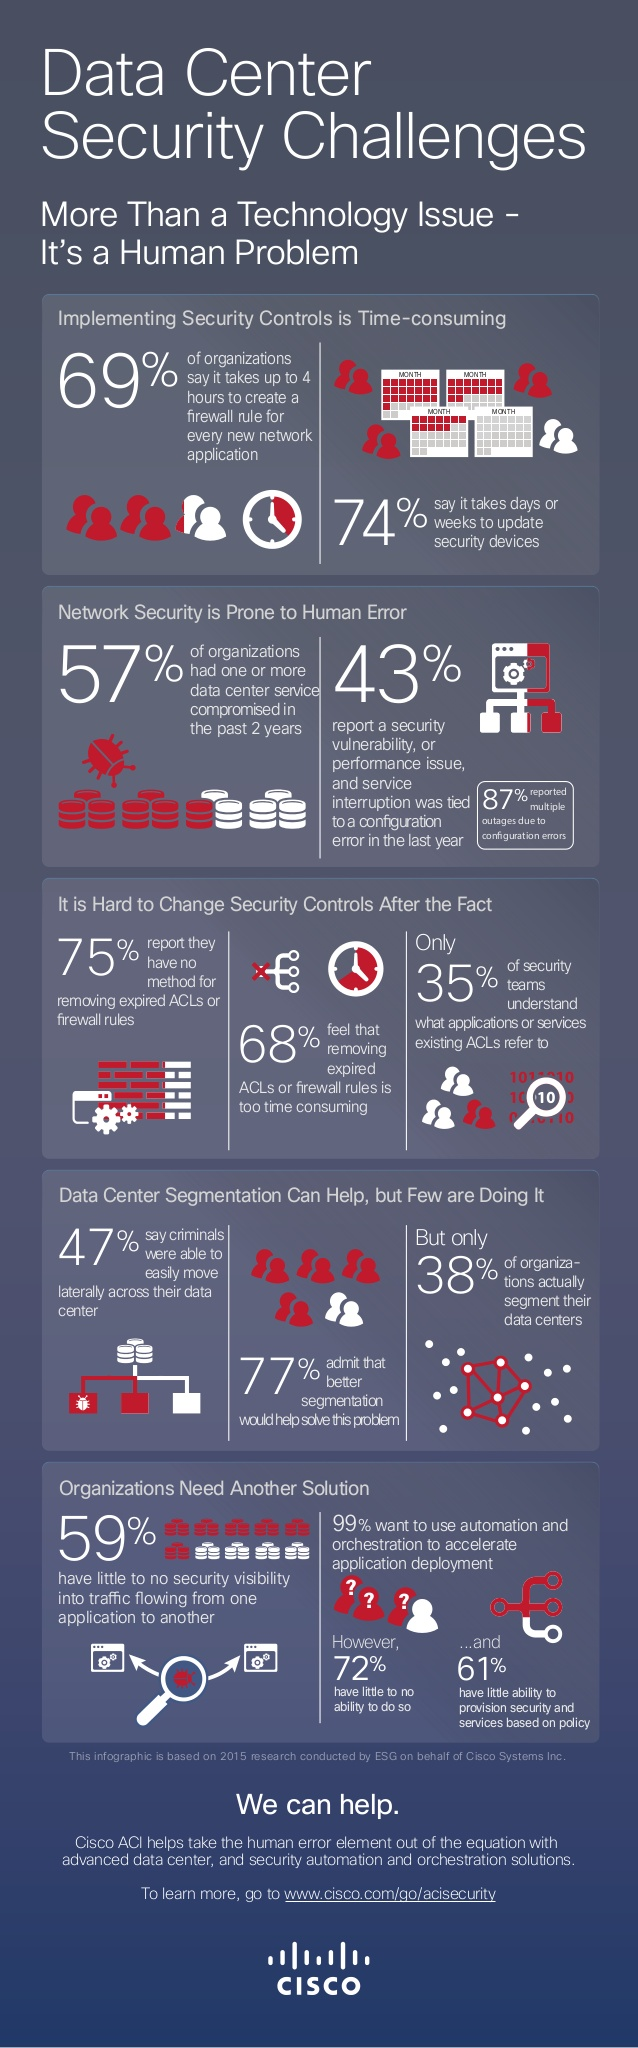 Data Center Security Challenges on YourDaily Tech Image Credit: Cisco